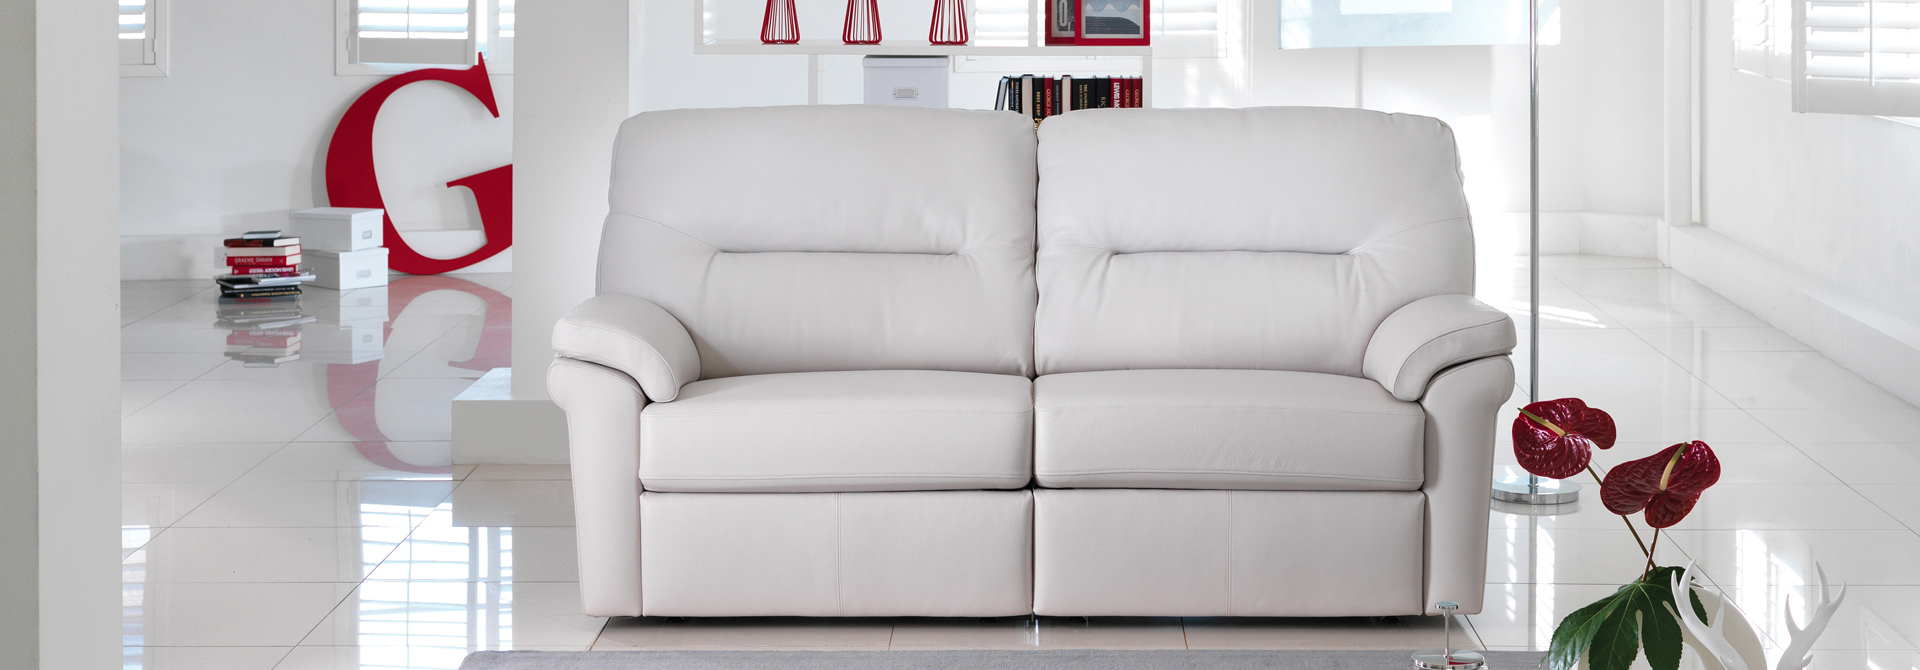 3 Seater Manual Recliner Sofas